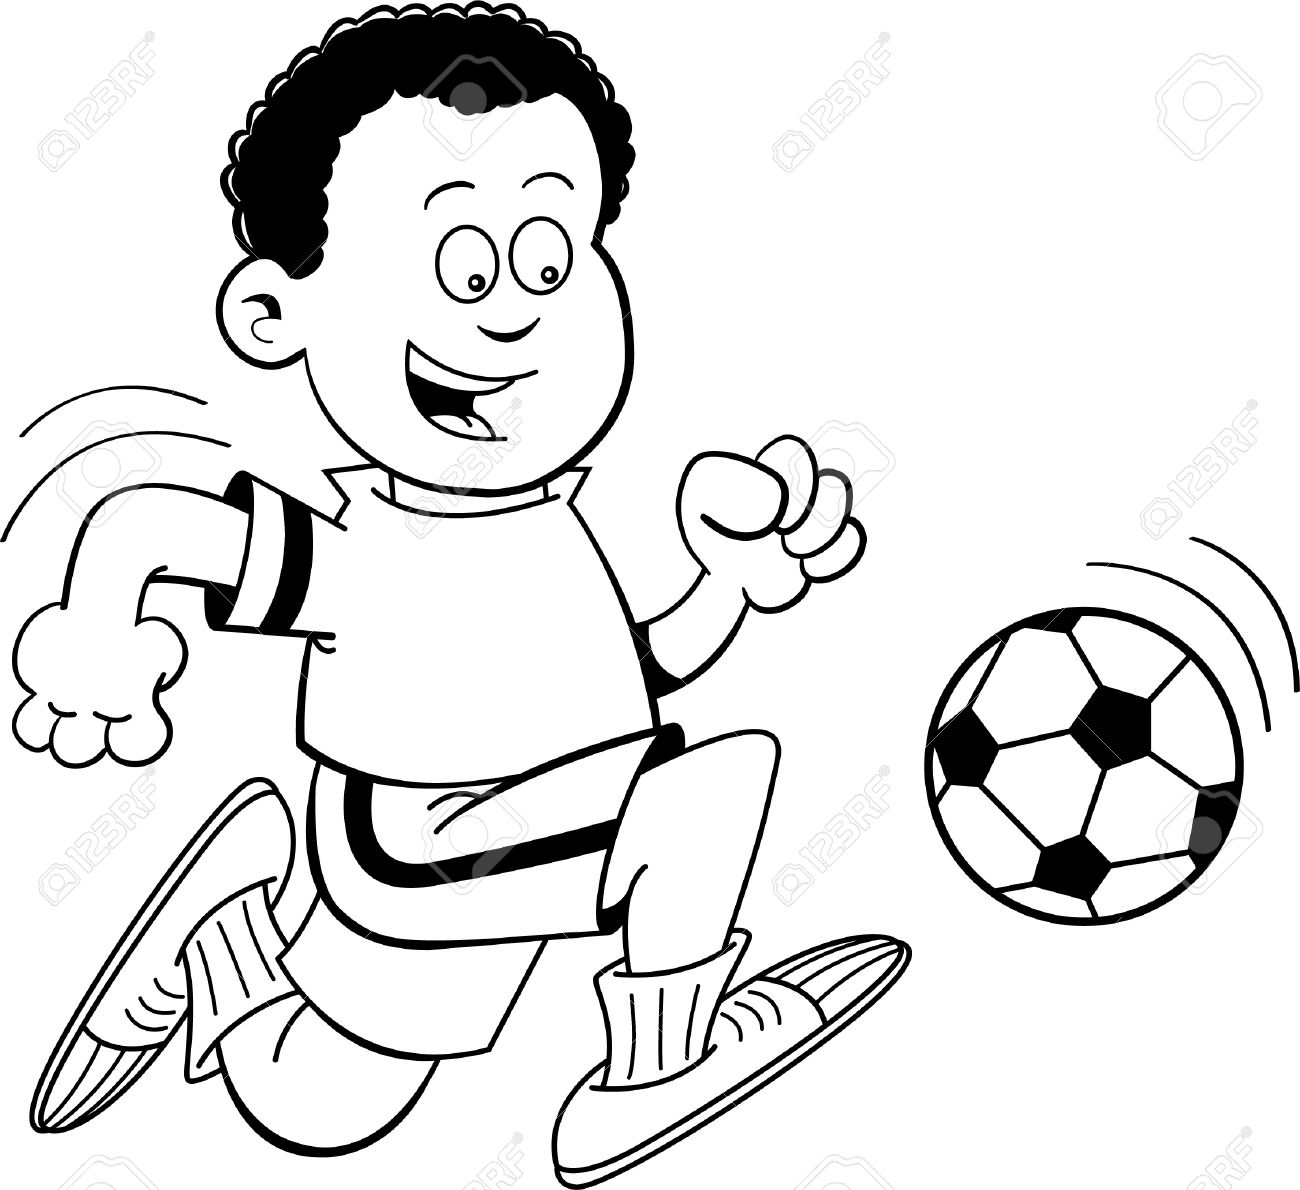 black and white illustration of an african boy playing soccer